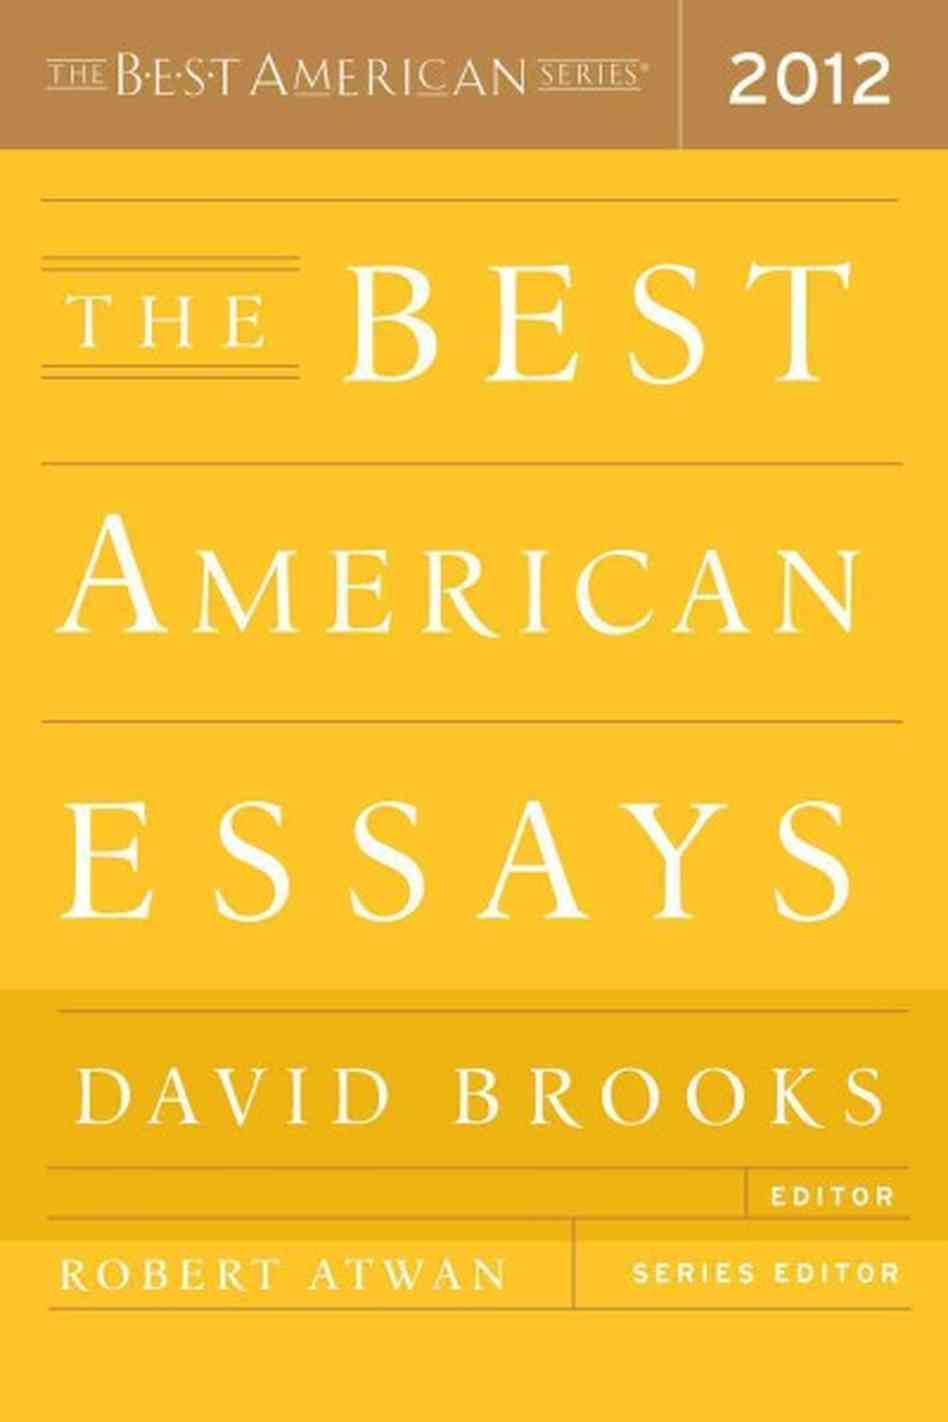 012 The Best American Essays 2012 Essay Wonderful 2018 Pdf 2017 Table Of Contents 2015 Free Full